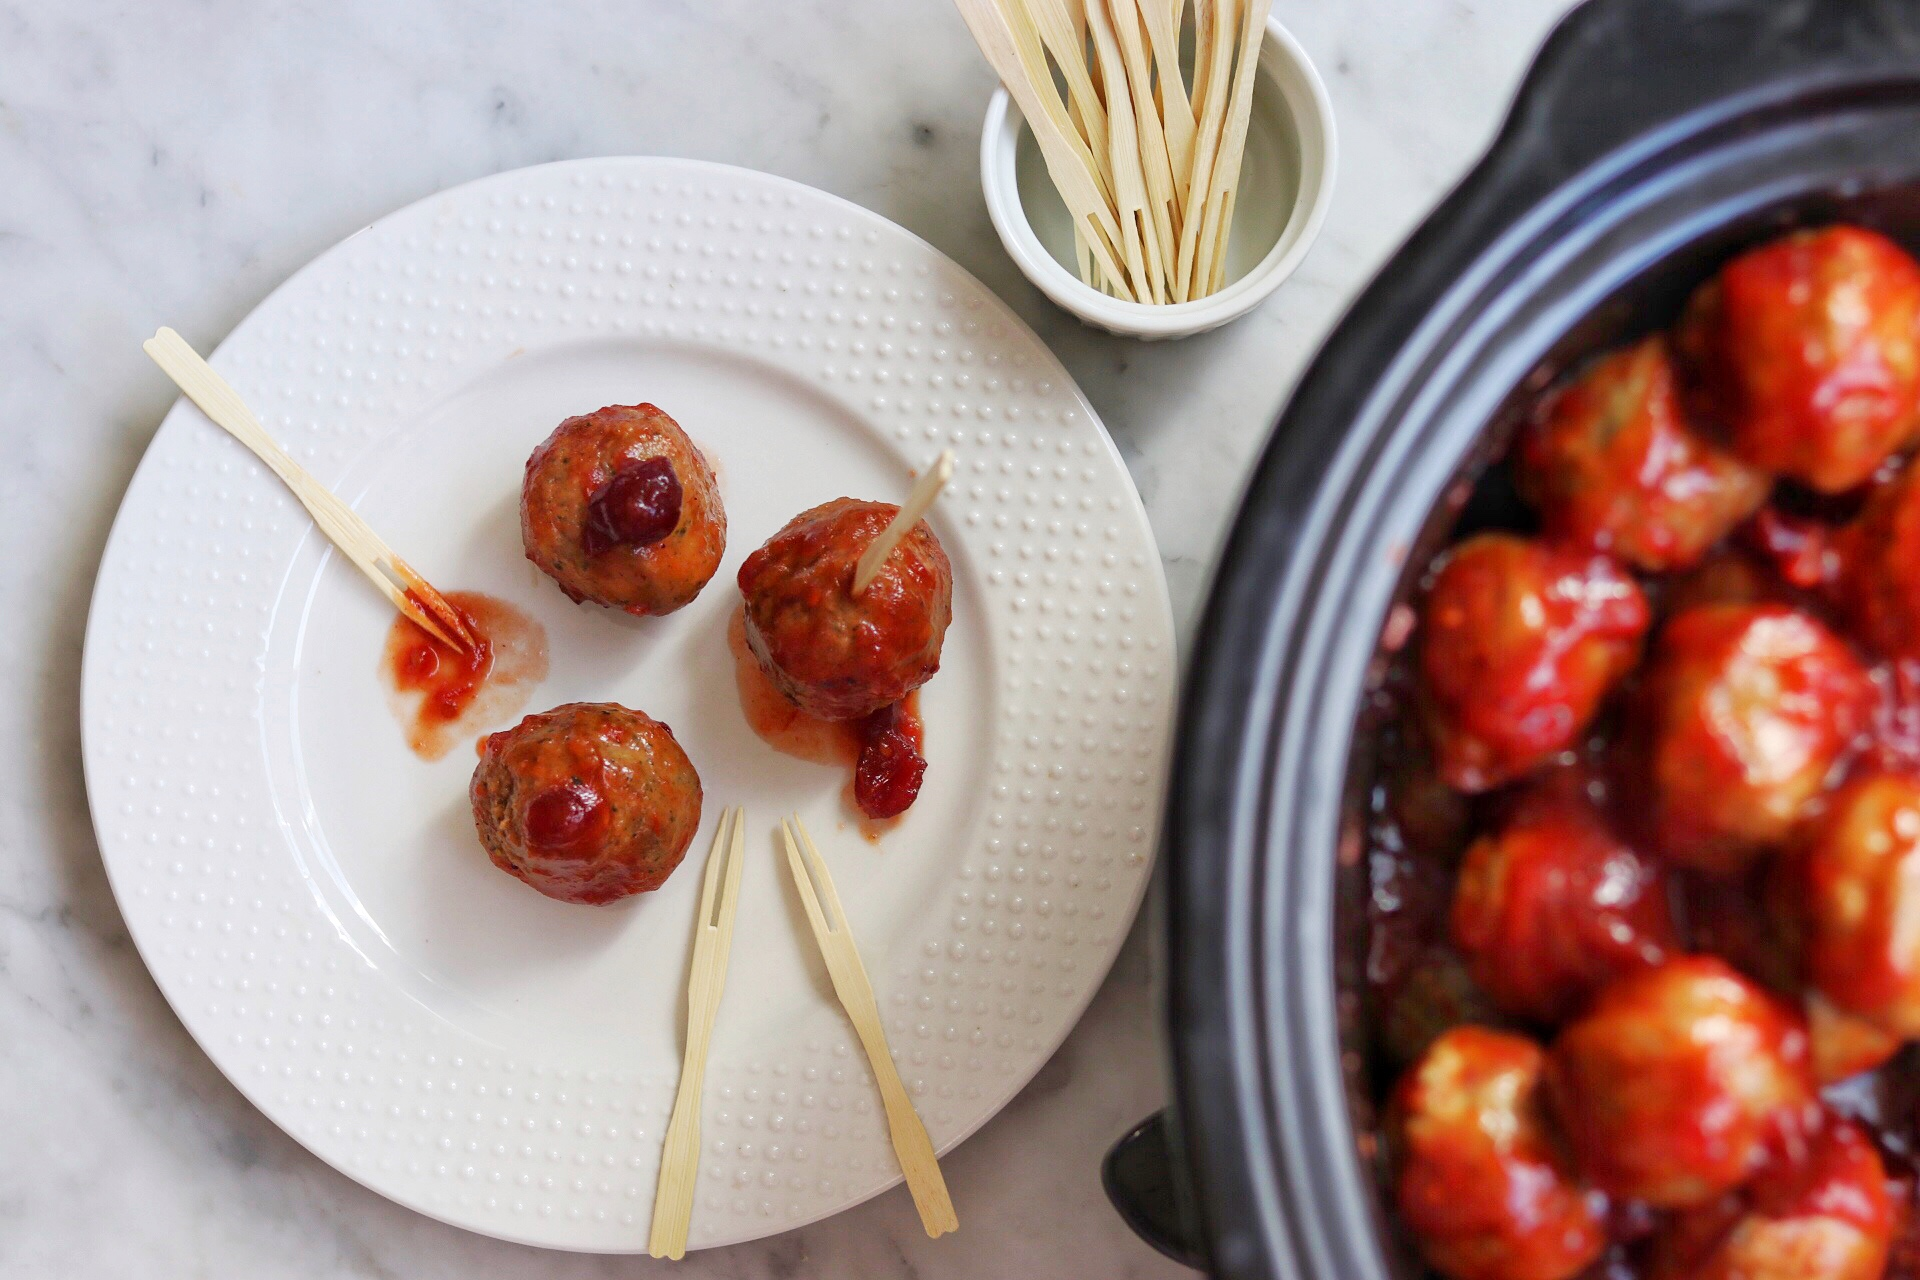 chili and cranberry sauce meatballs